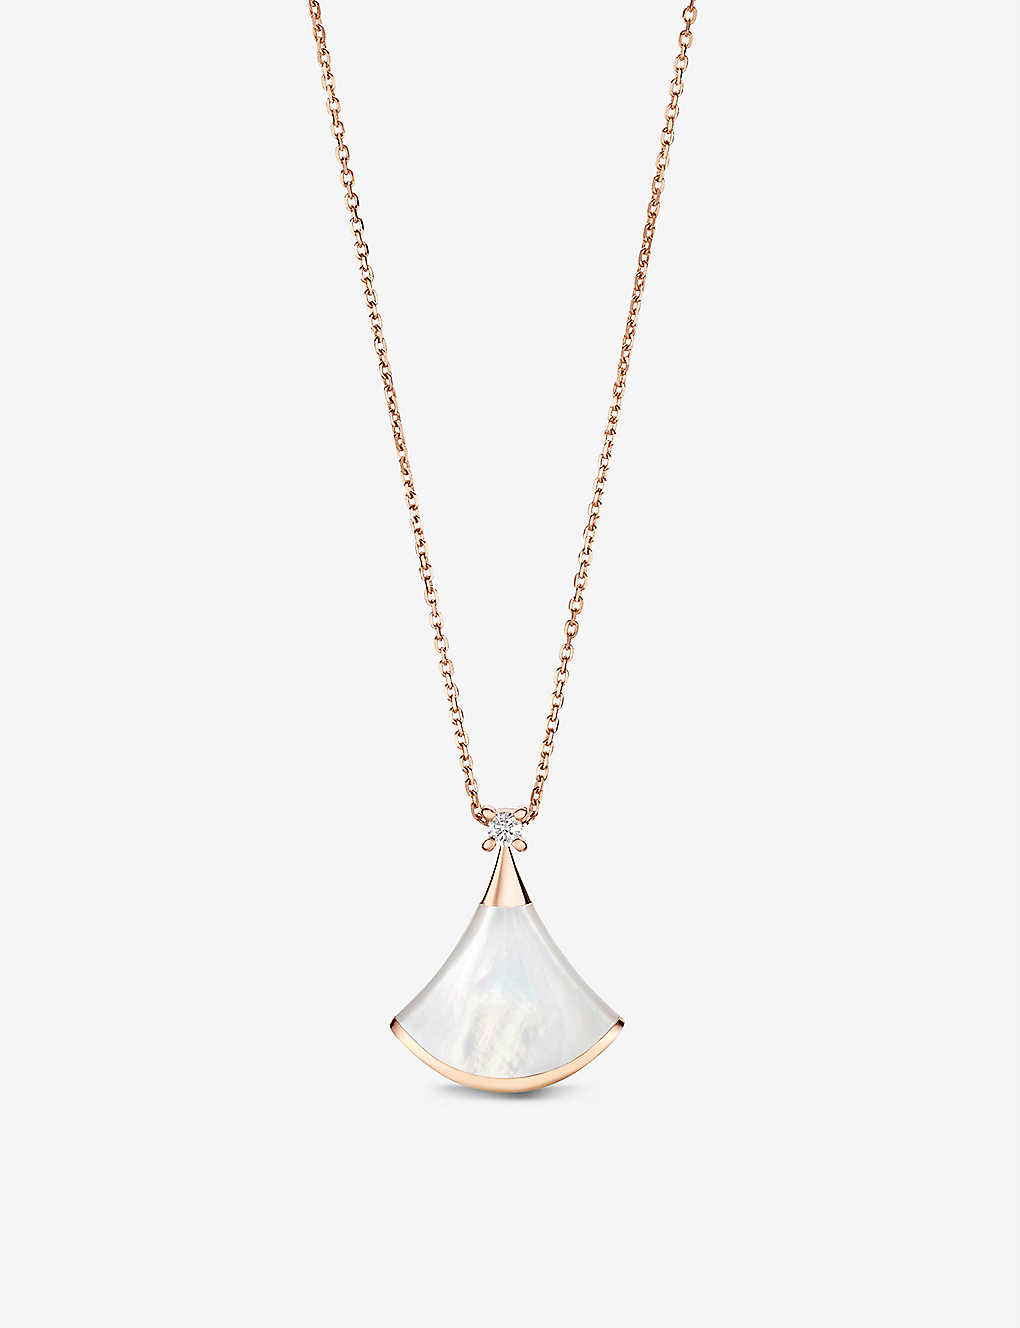 Divas' Dream 18kt pink-gold with mother of pearl and pave diamond necklace